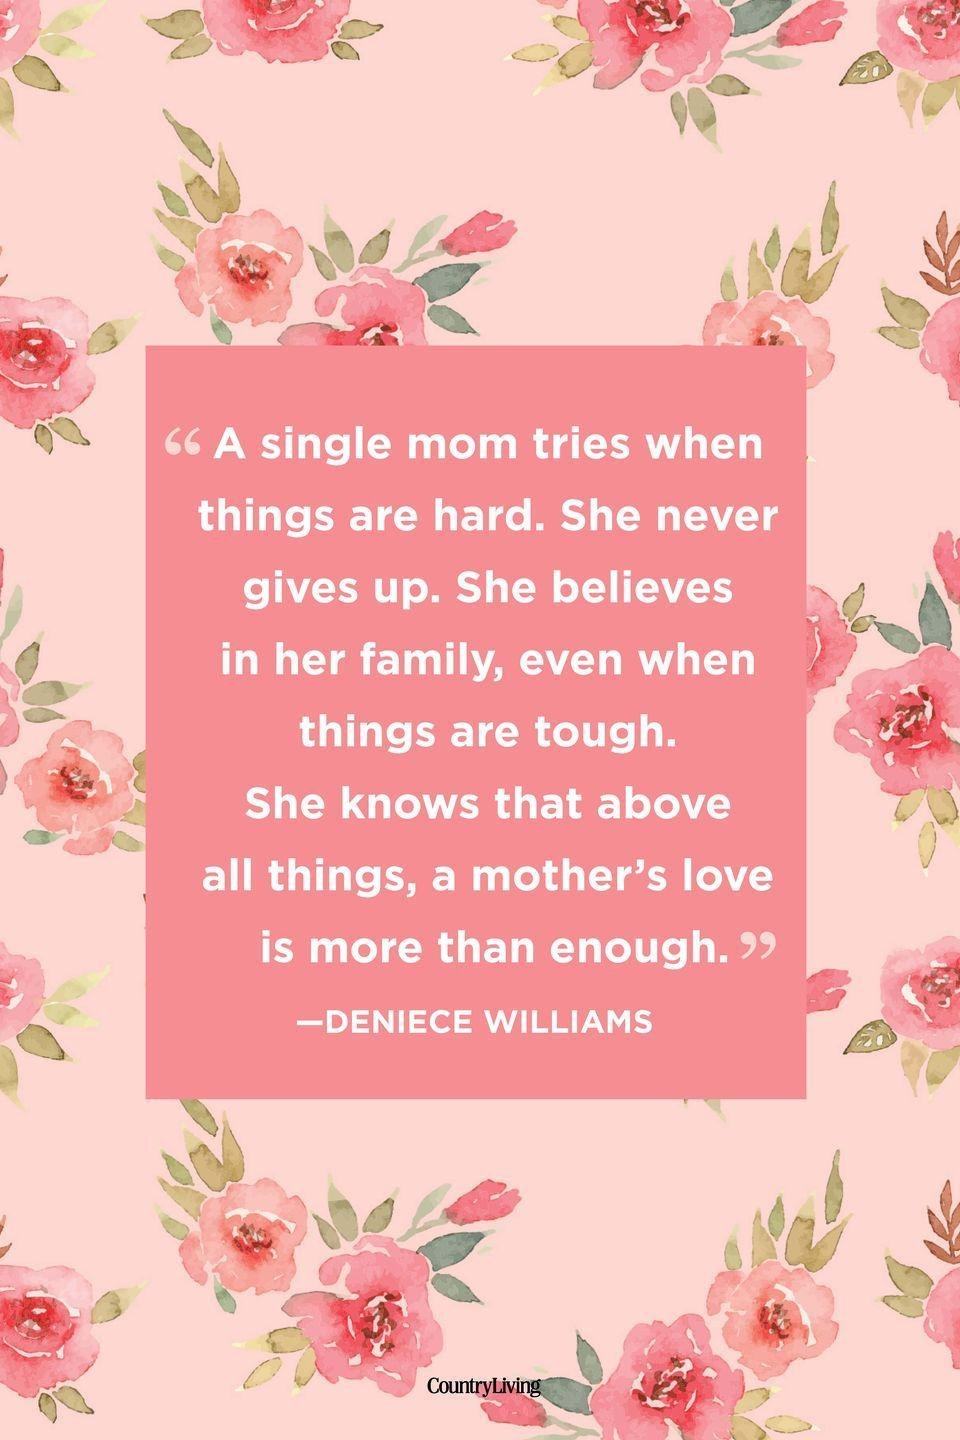 "<p>""A single mom tries when things are hard. She never gives up. She believes in her family, even when things are tough. She knows that above all things, a mother's love is more than enough.""</p>"